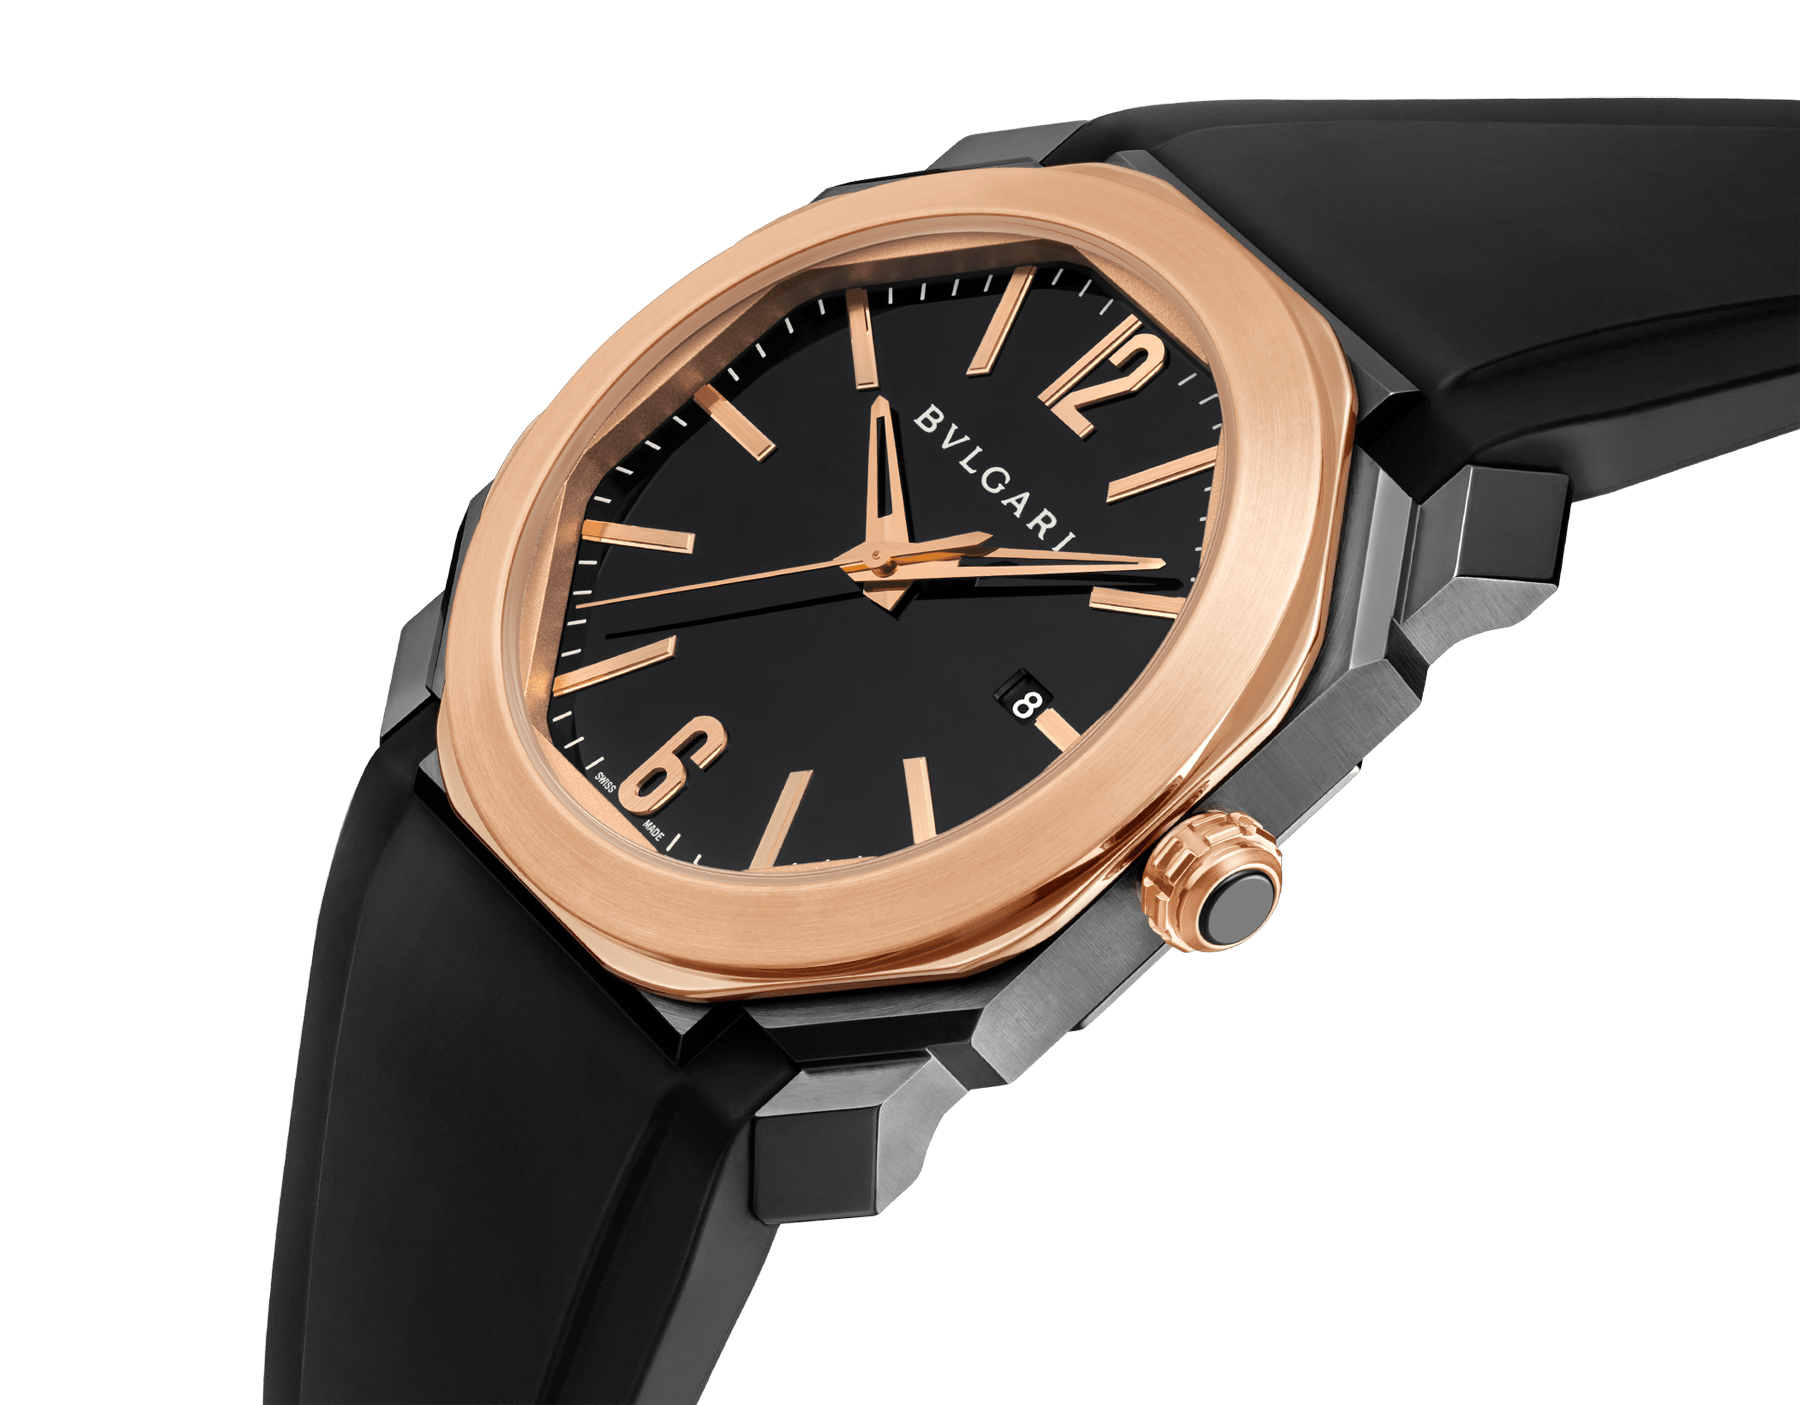 Octo watch with mechanical manufacture movement, automatic winding and date, stainless steel case treated with black Diamond Like Carbon, 18 kt rose gold bezel, black lacquered dial and black rubber bracelet. 102485 image 2